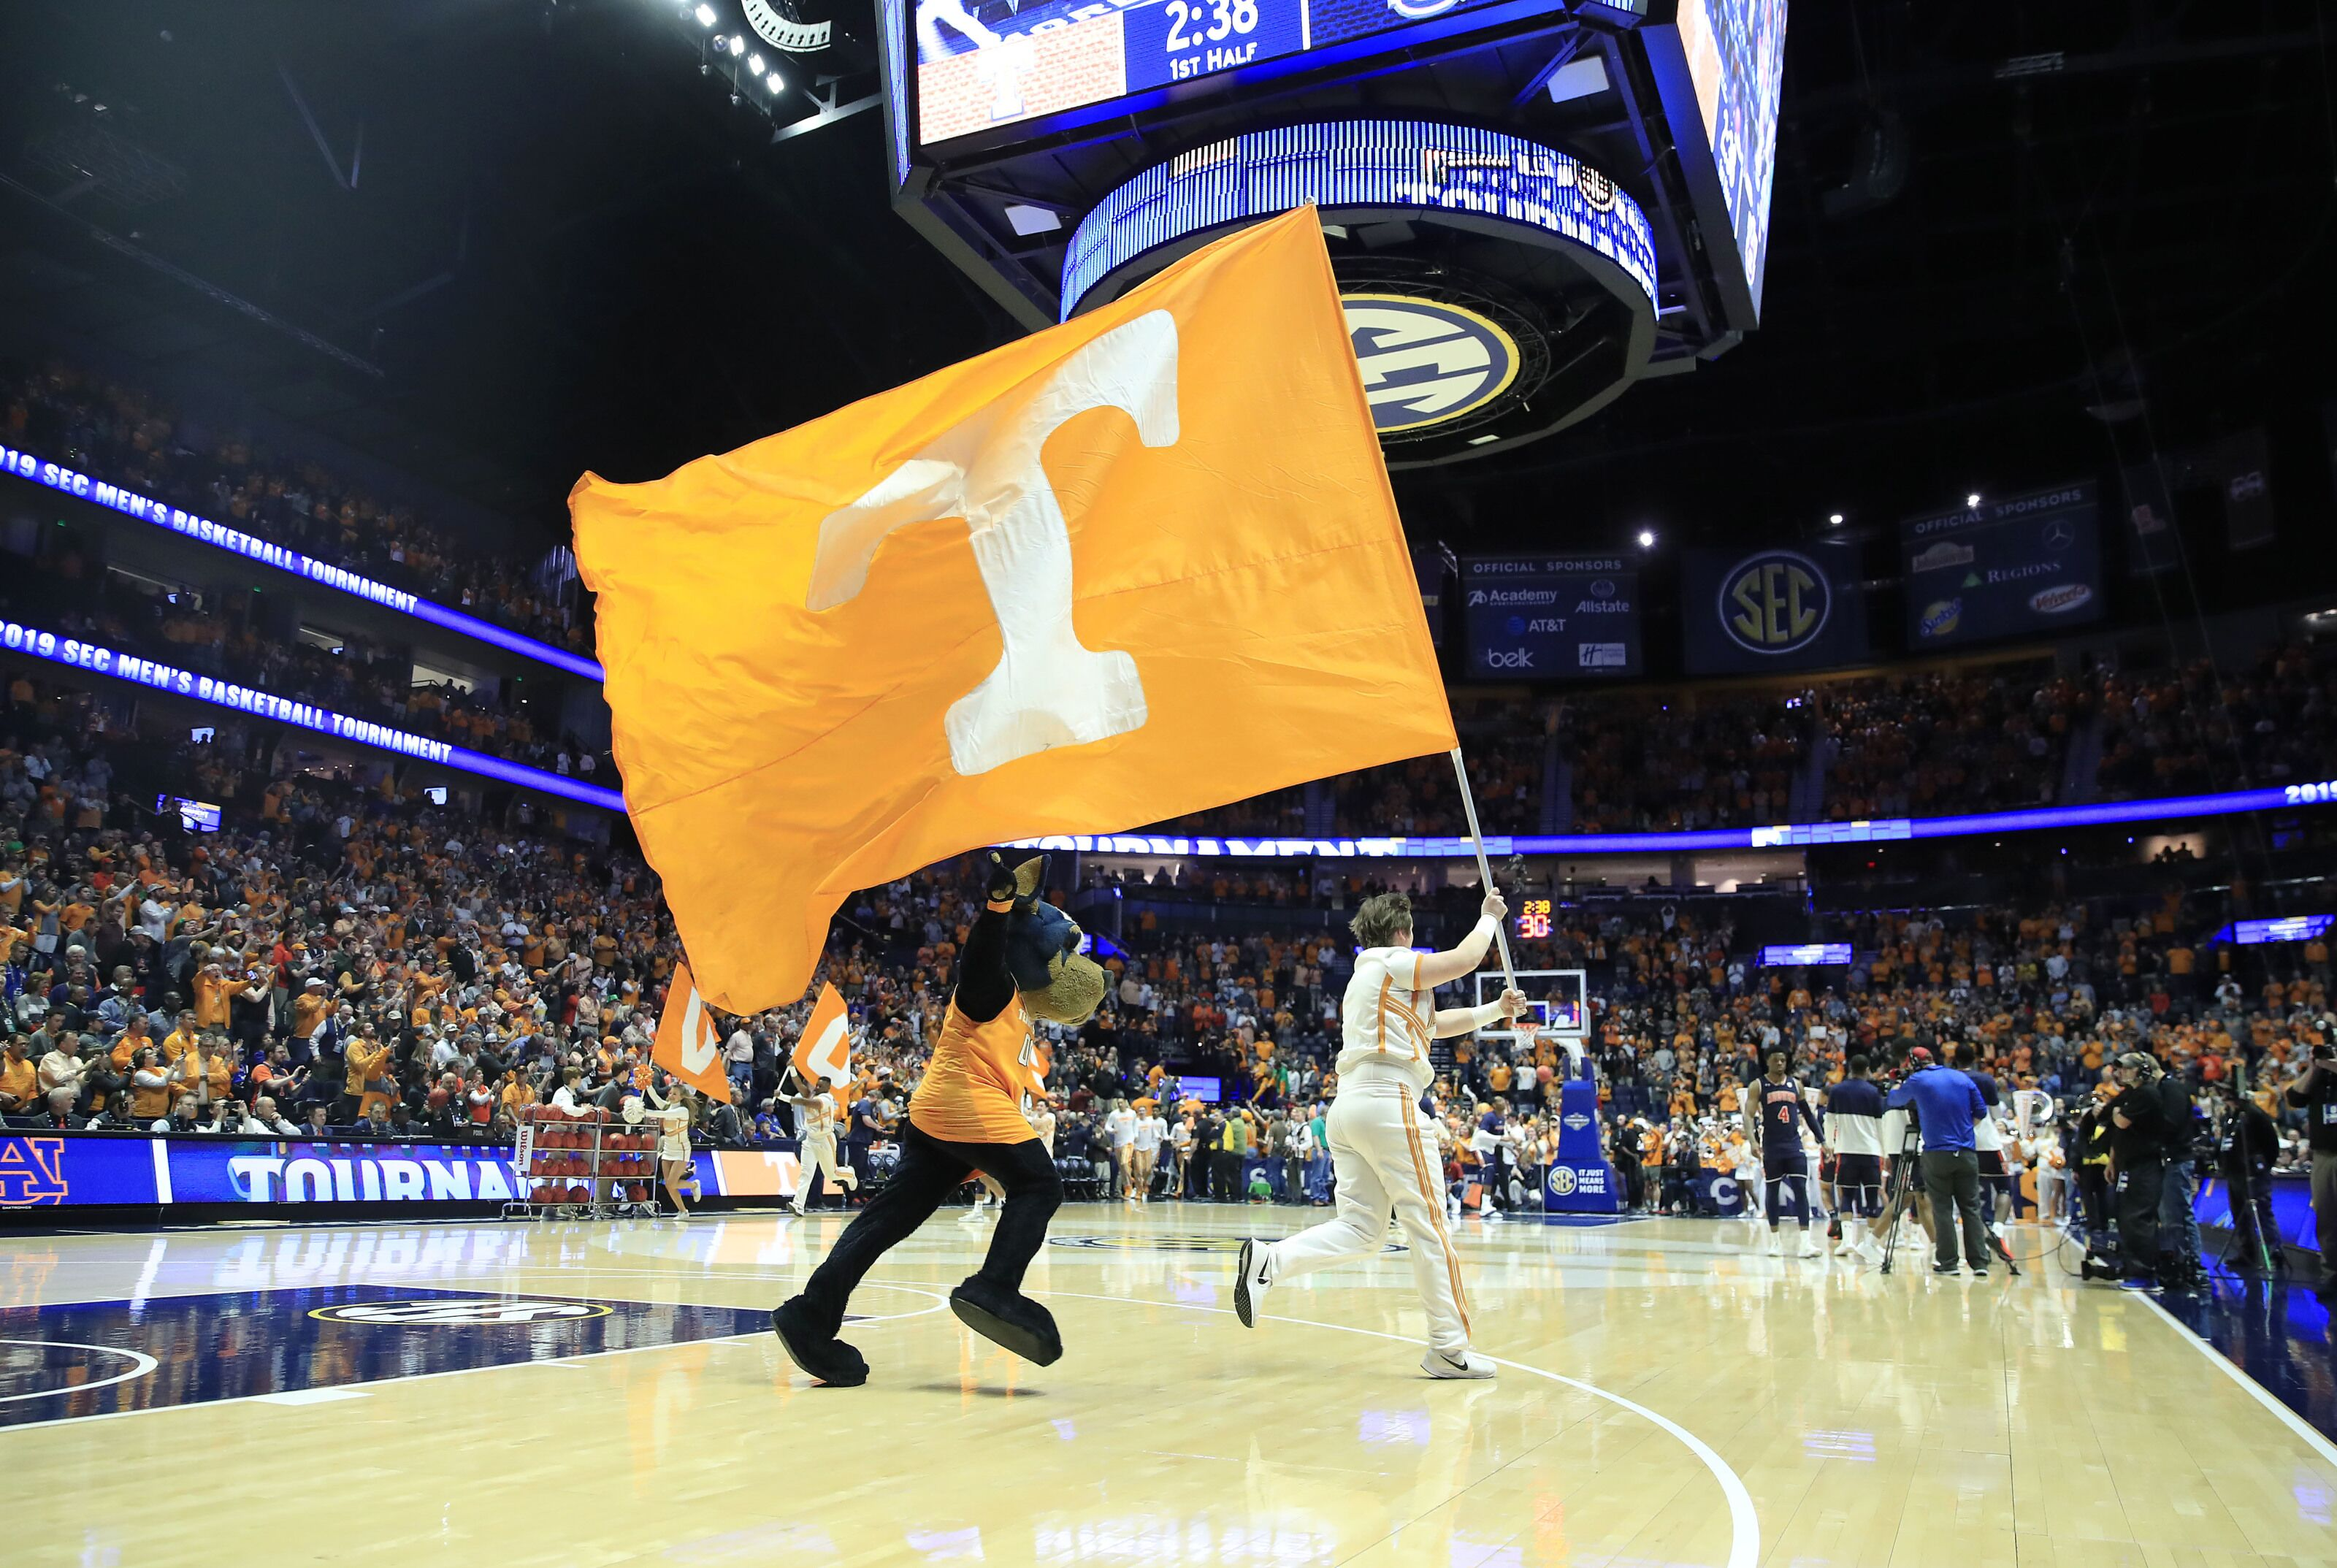 Tennessee basketball: Winning NCAA Tournament with Vols resume would be extremely rare